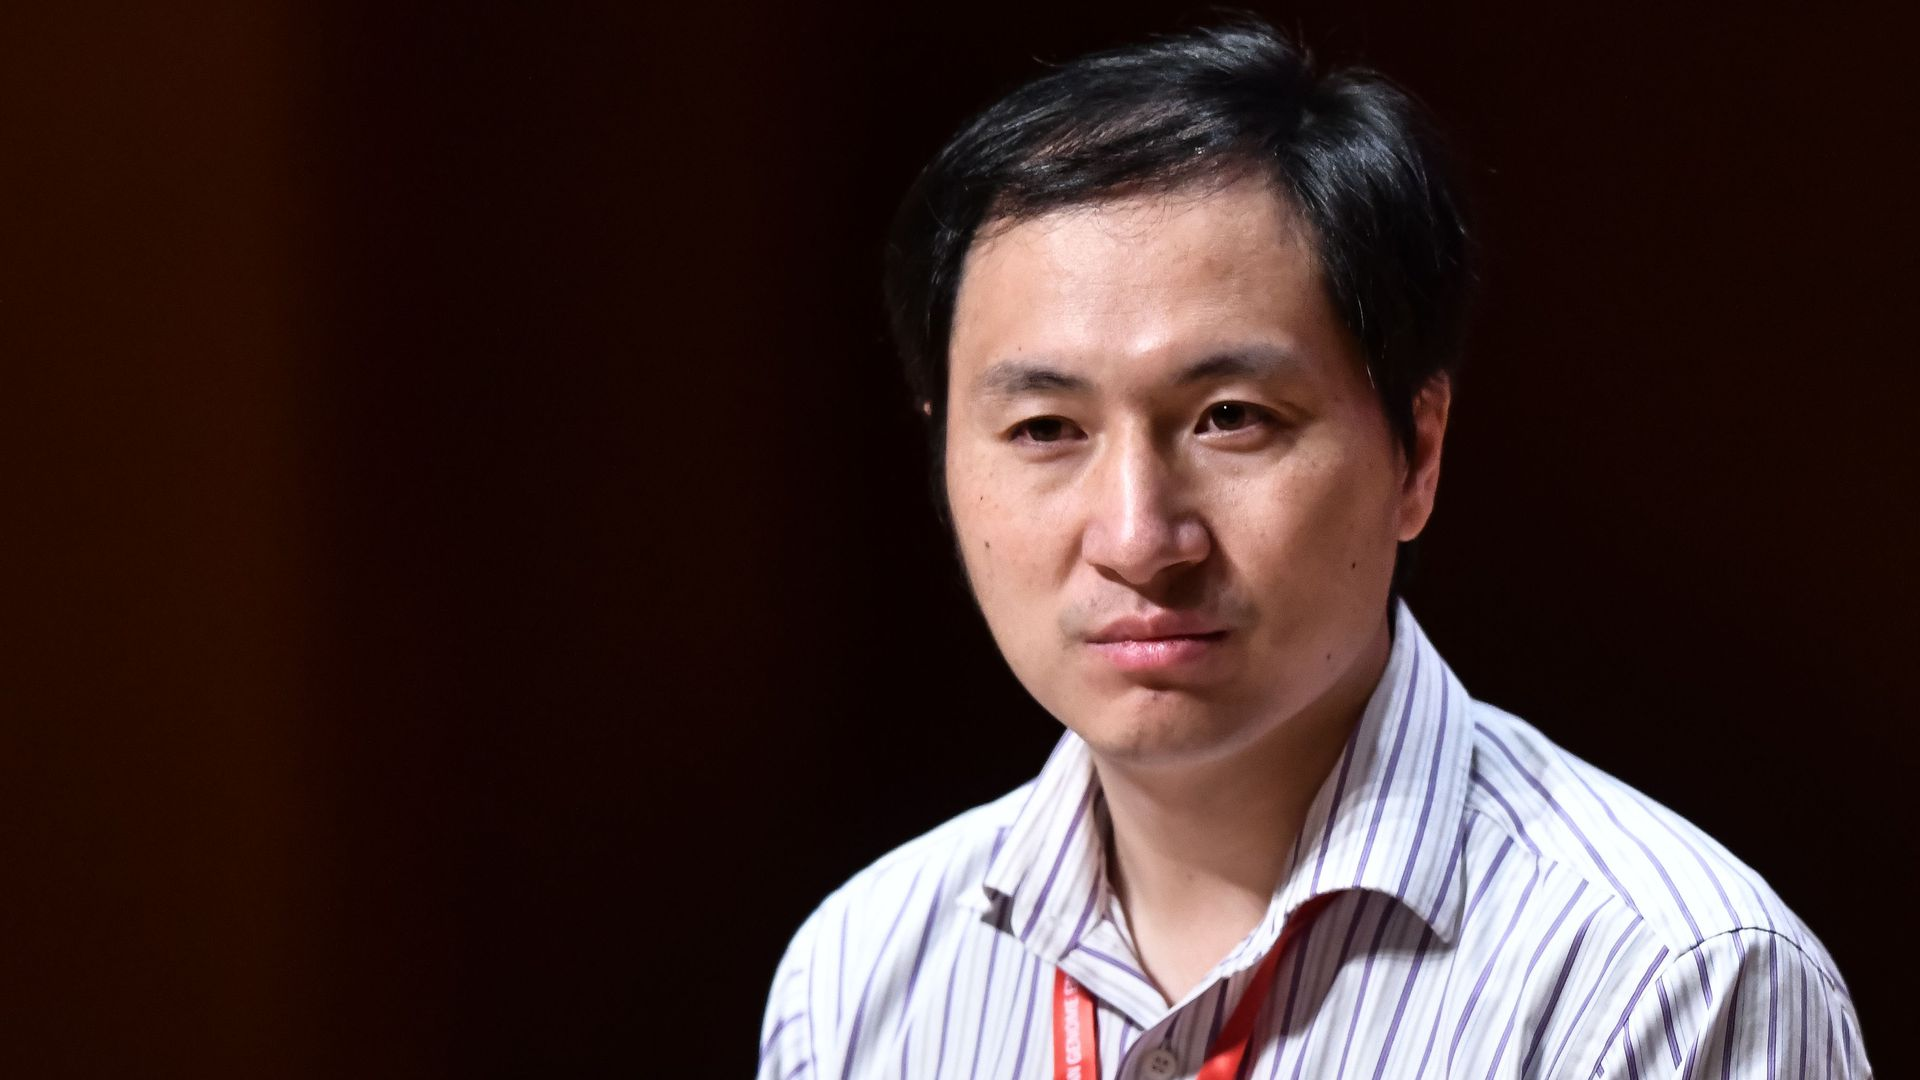 In this image, Chinese scientist He Jiankui sits and listens to someone speaking